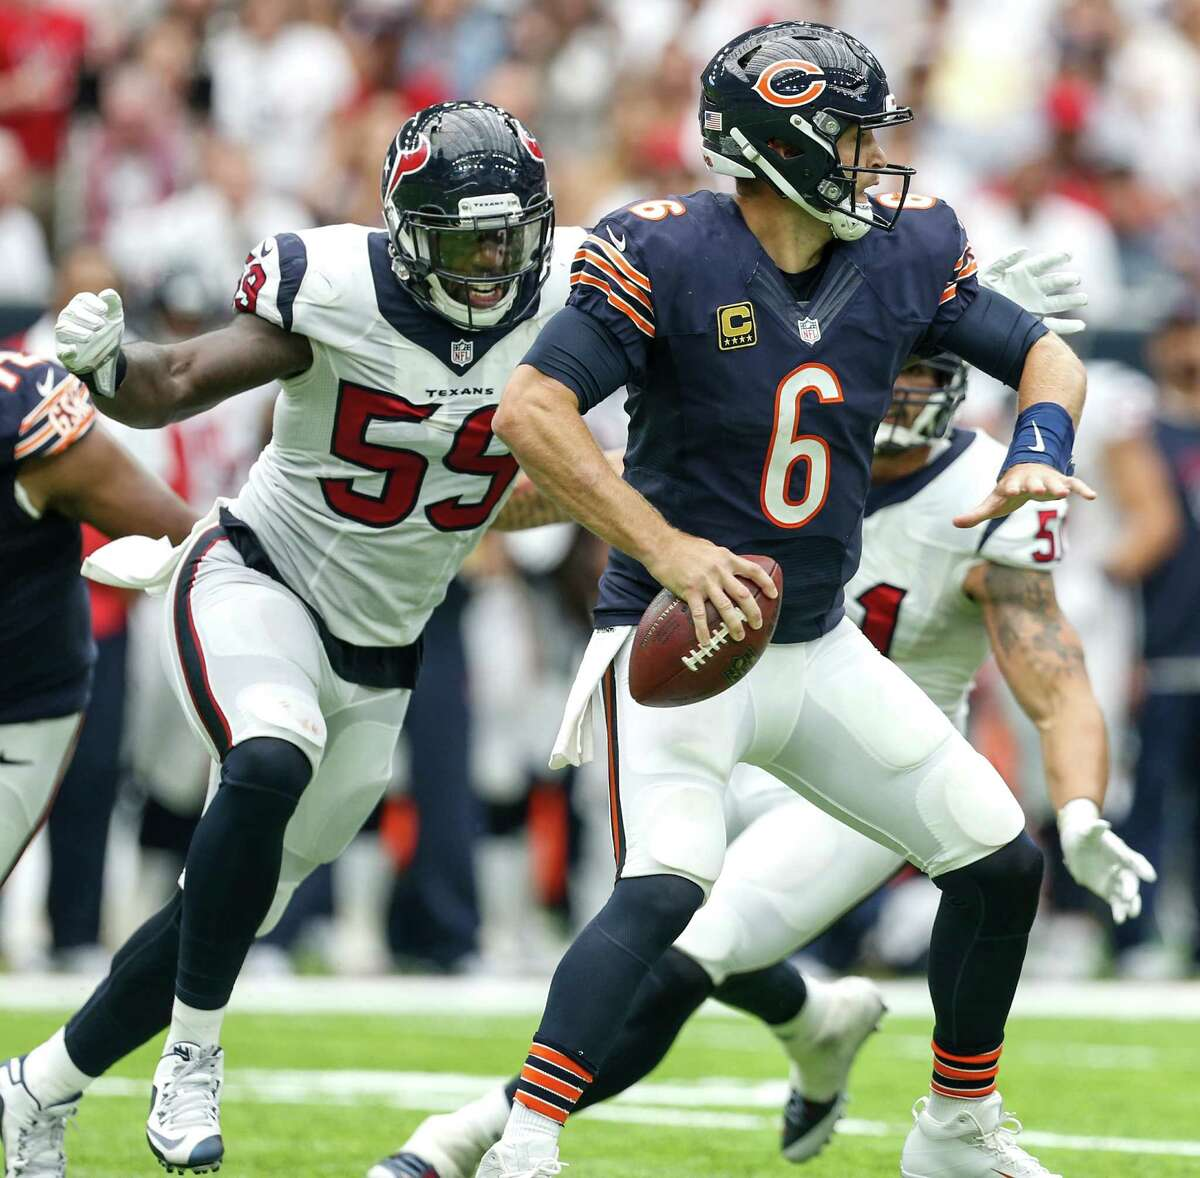 The Texans will try to make it 5-0 all-time against the Bears on Sunday. Houston won the 2016 meeting at NRG Stadium against the Jay Cutler-led Bears.